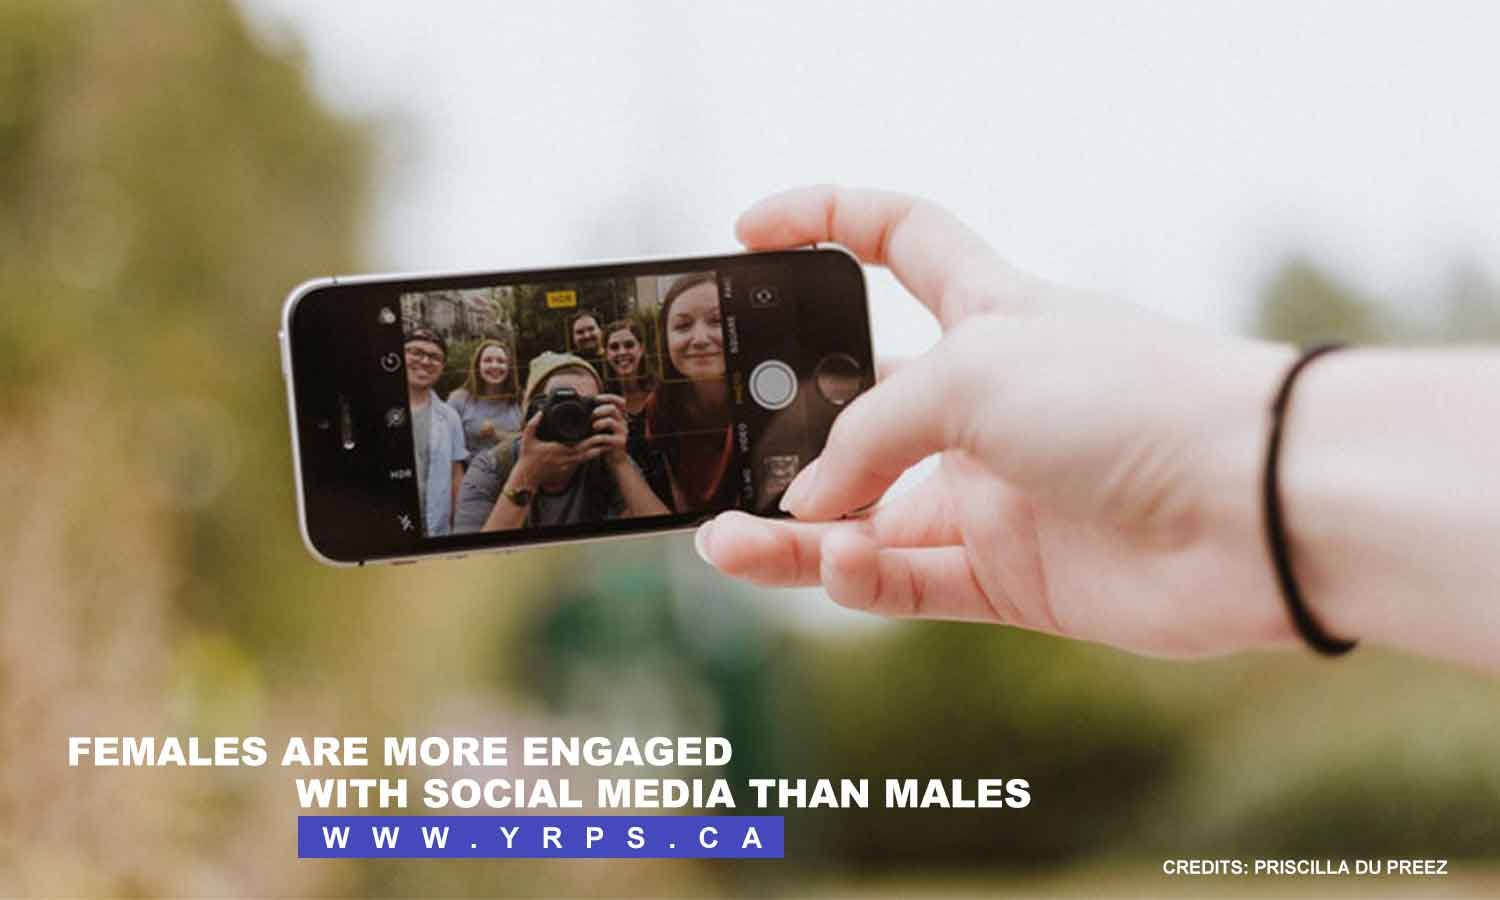 Females are more engaged with social media than males